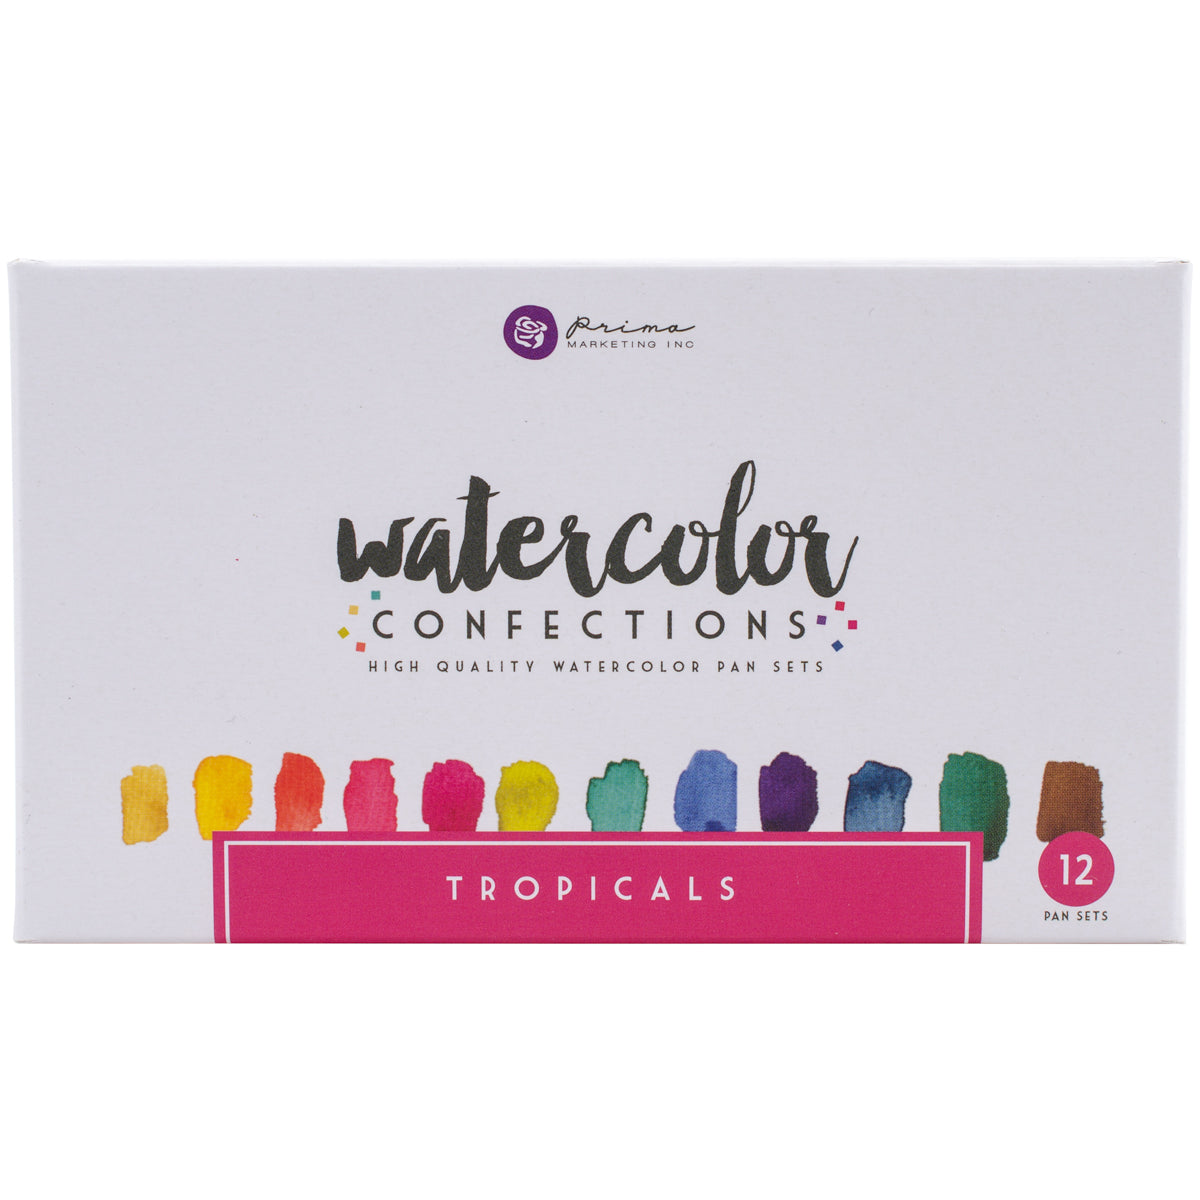 539442 Prima Watercolor Confections Watercolor Pans 12/Pkg Tropicals